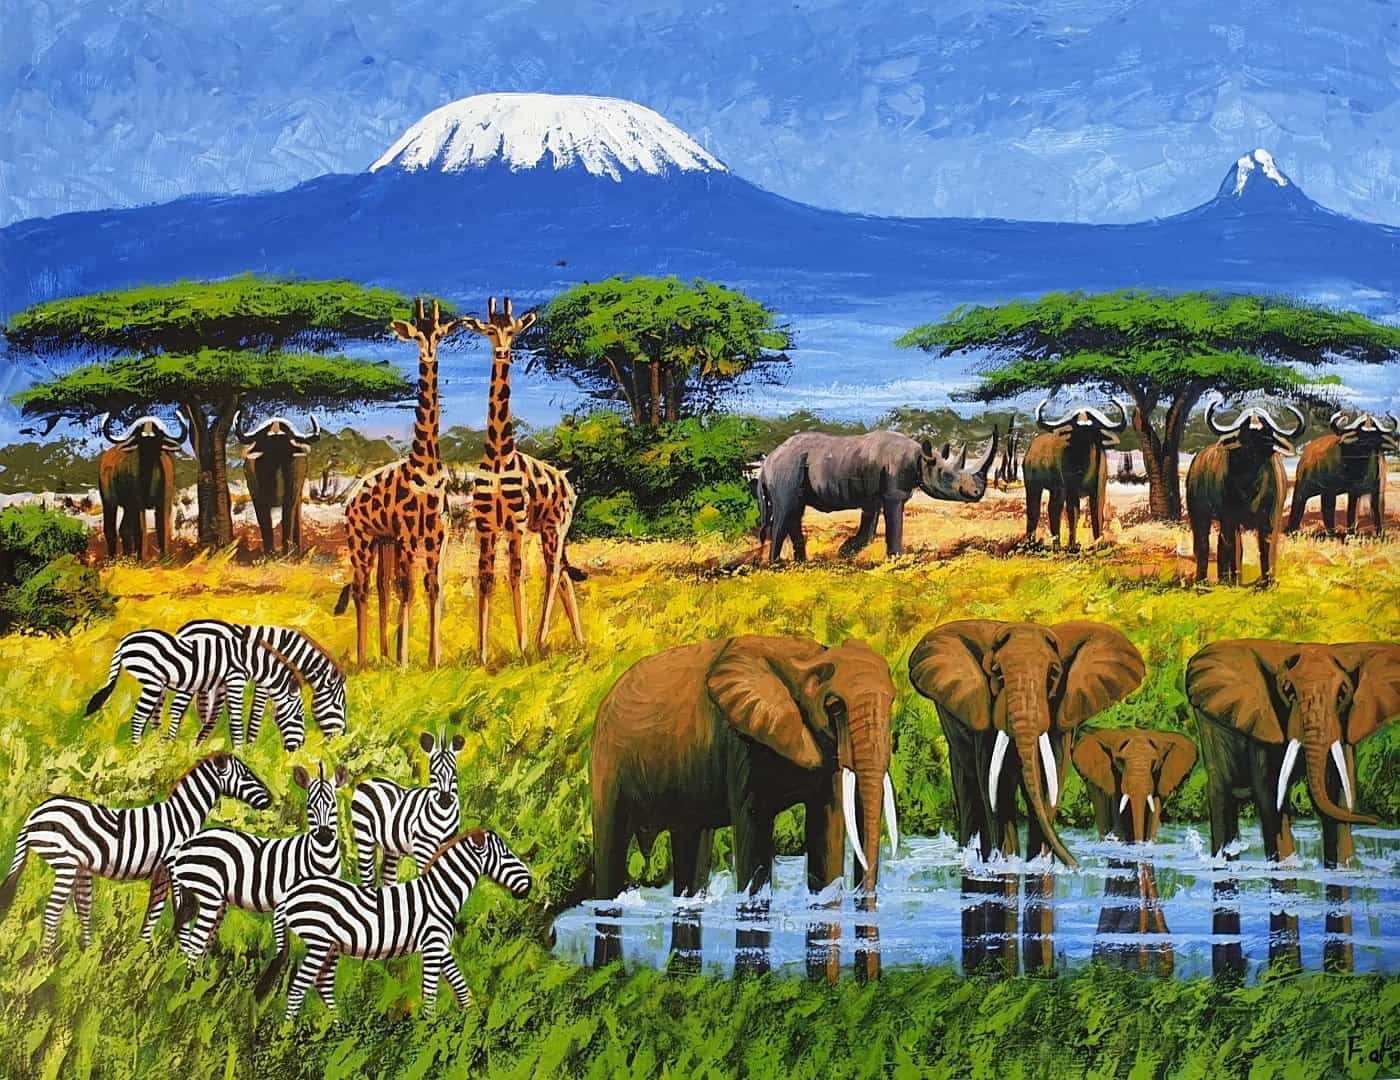 African painting of animals in the rainy season